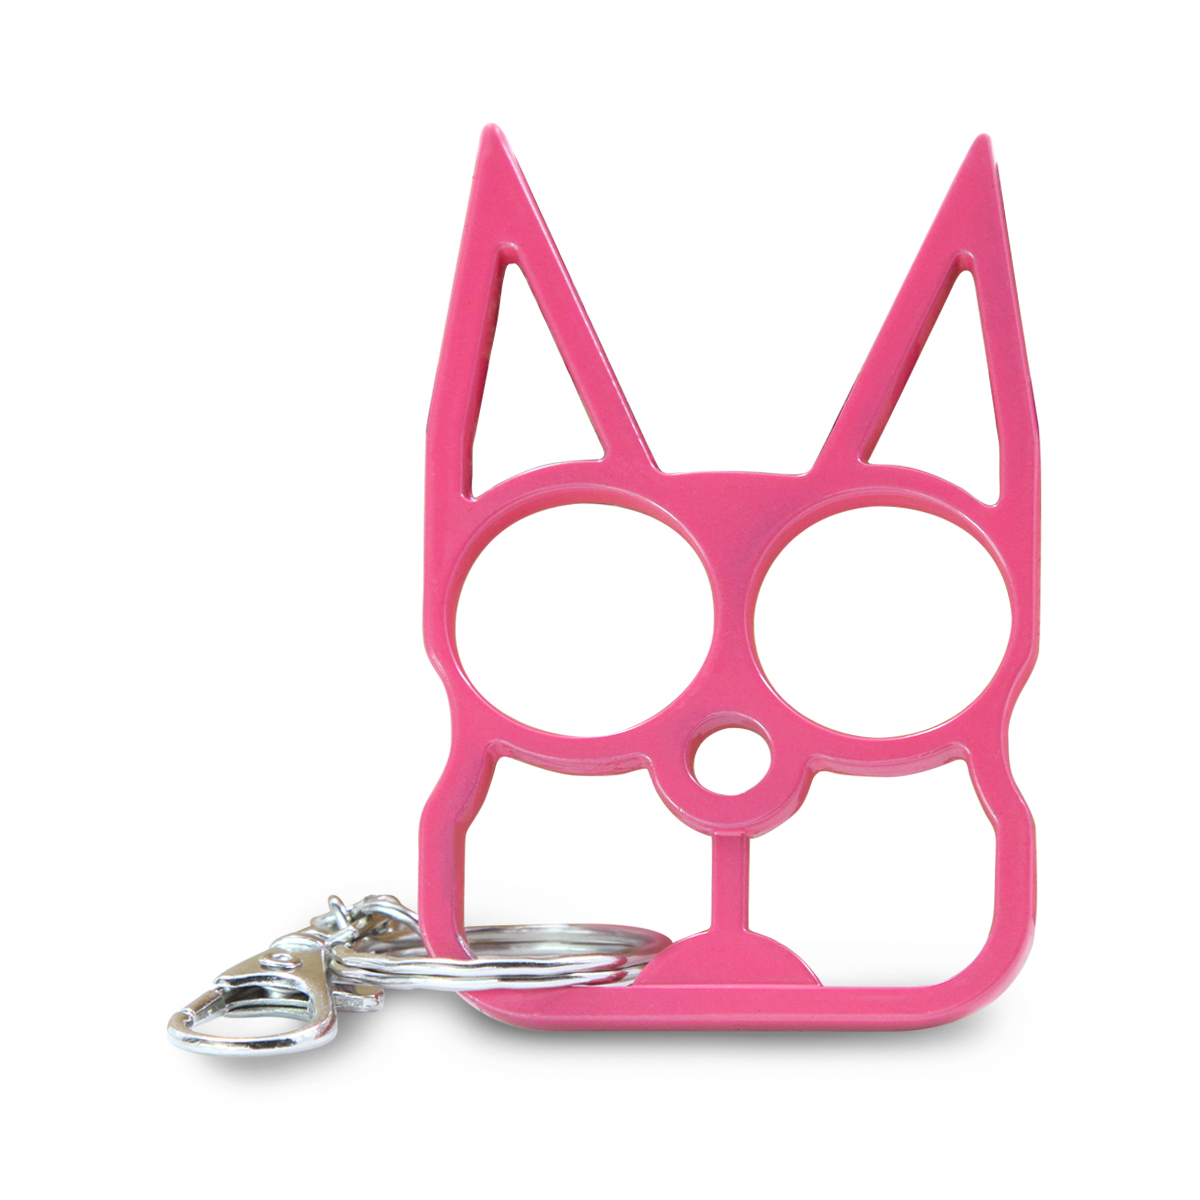 XHIVAR Metal Cat Key Chain Personal Protection Self-defense Keychain Key Ring (Pink)